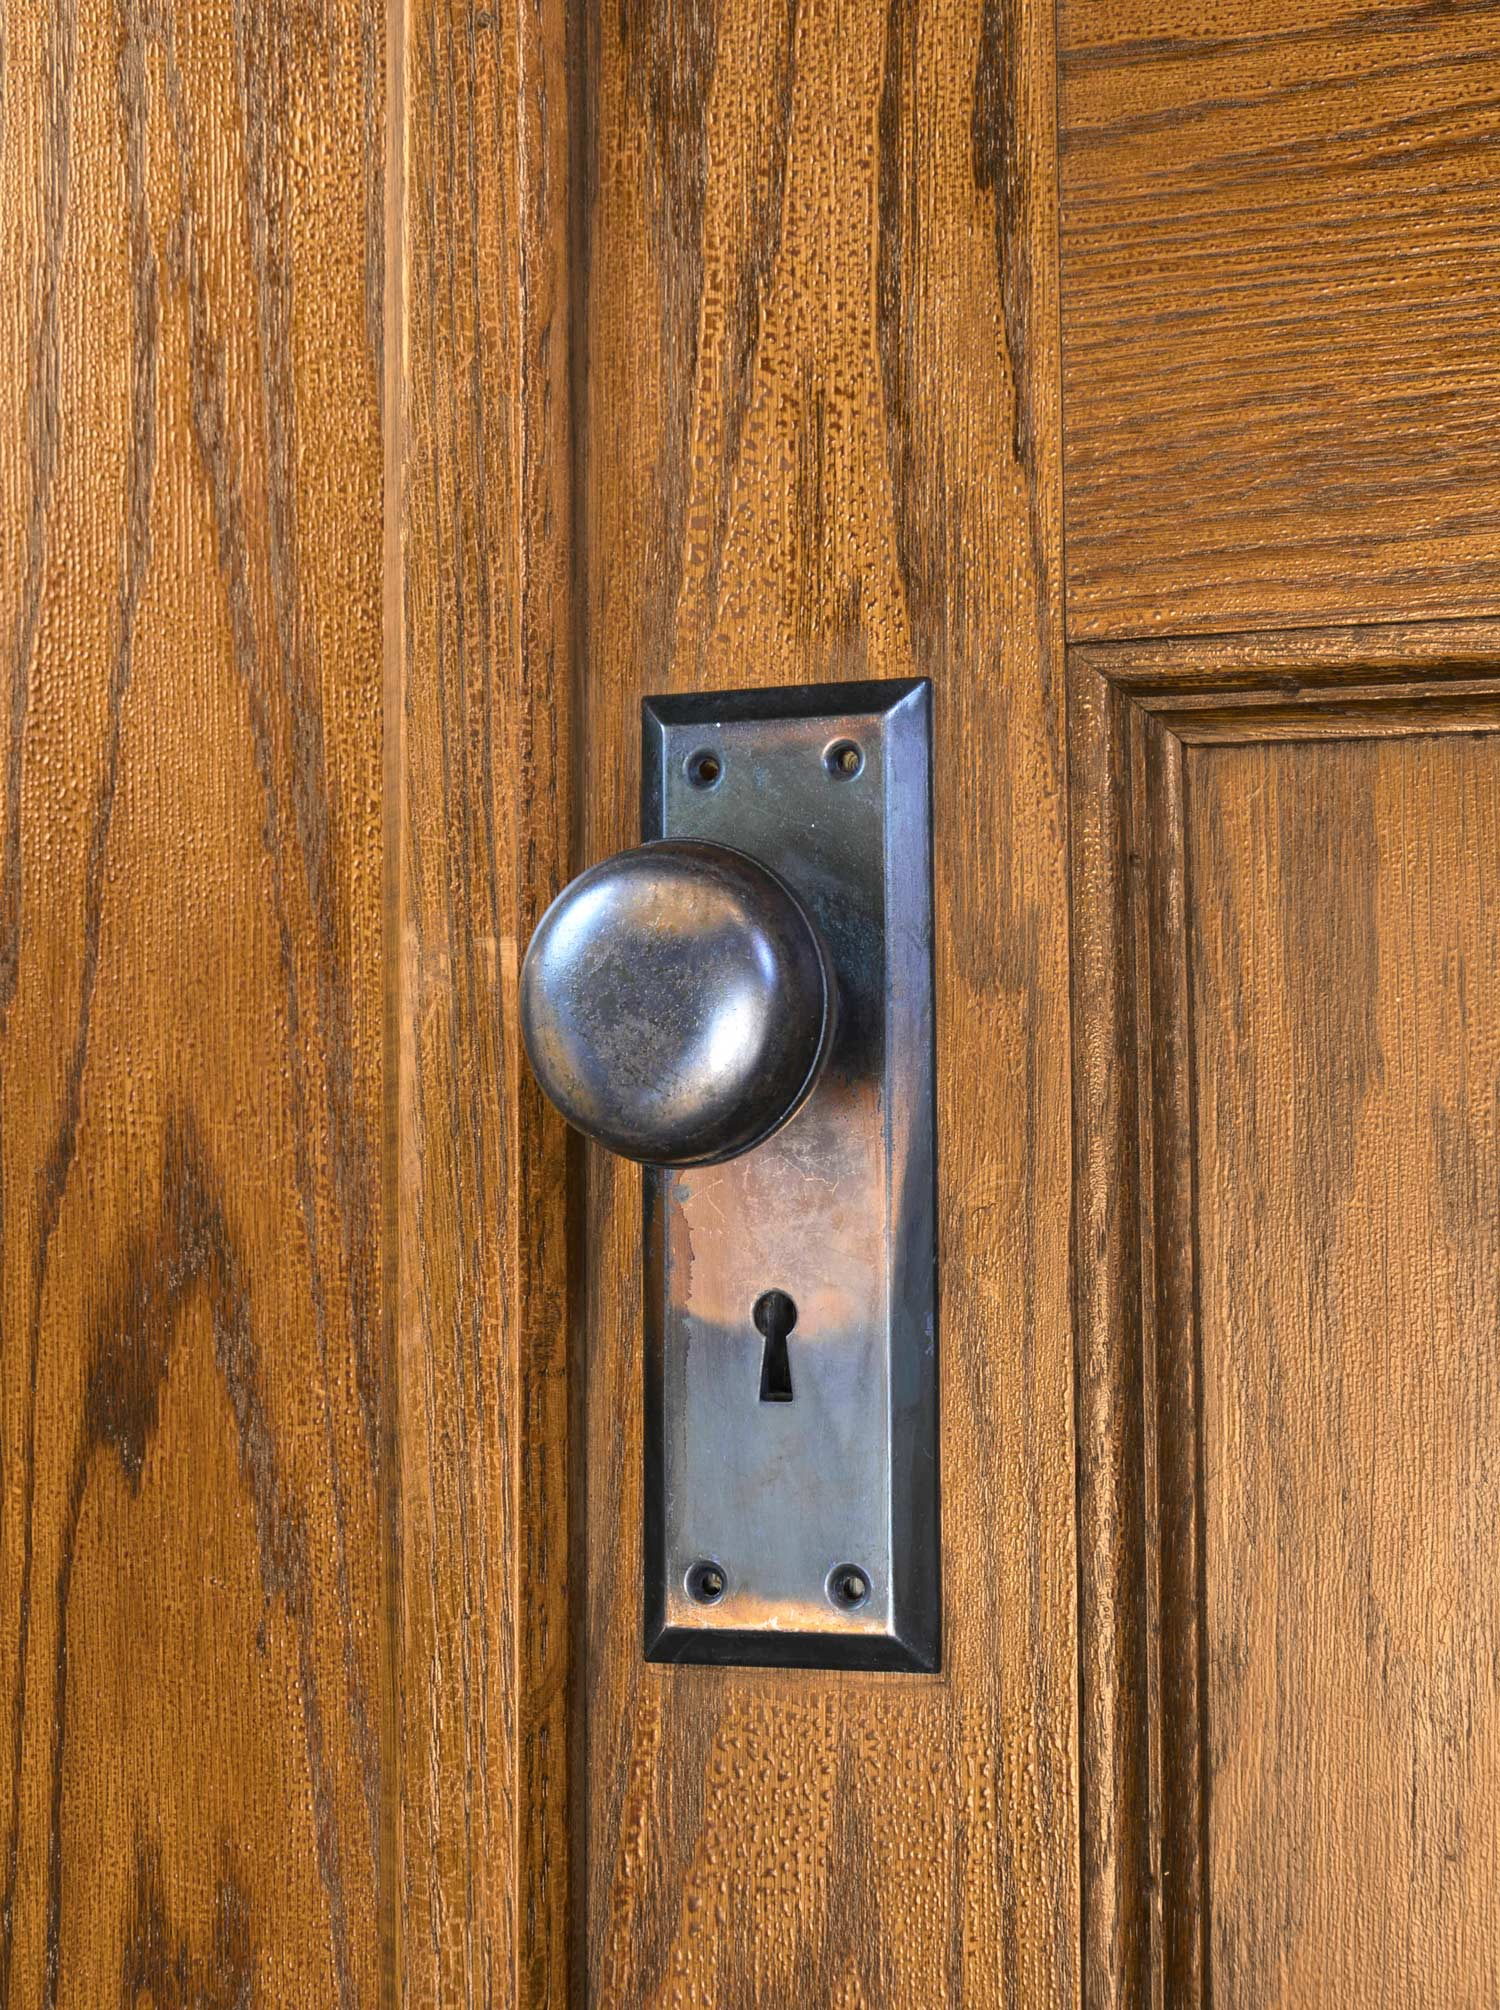 46116-tall-oak-double-doors-with-beveled-glass-knob-detail.jpg